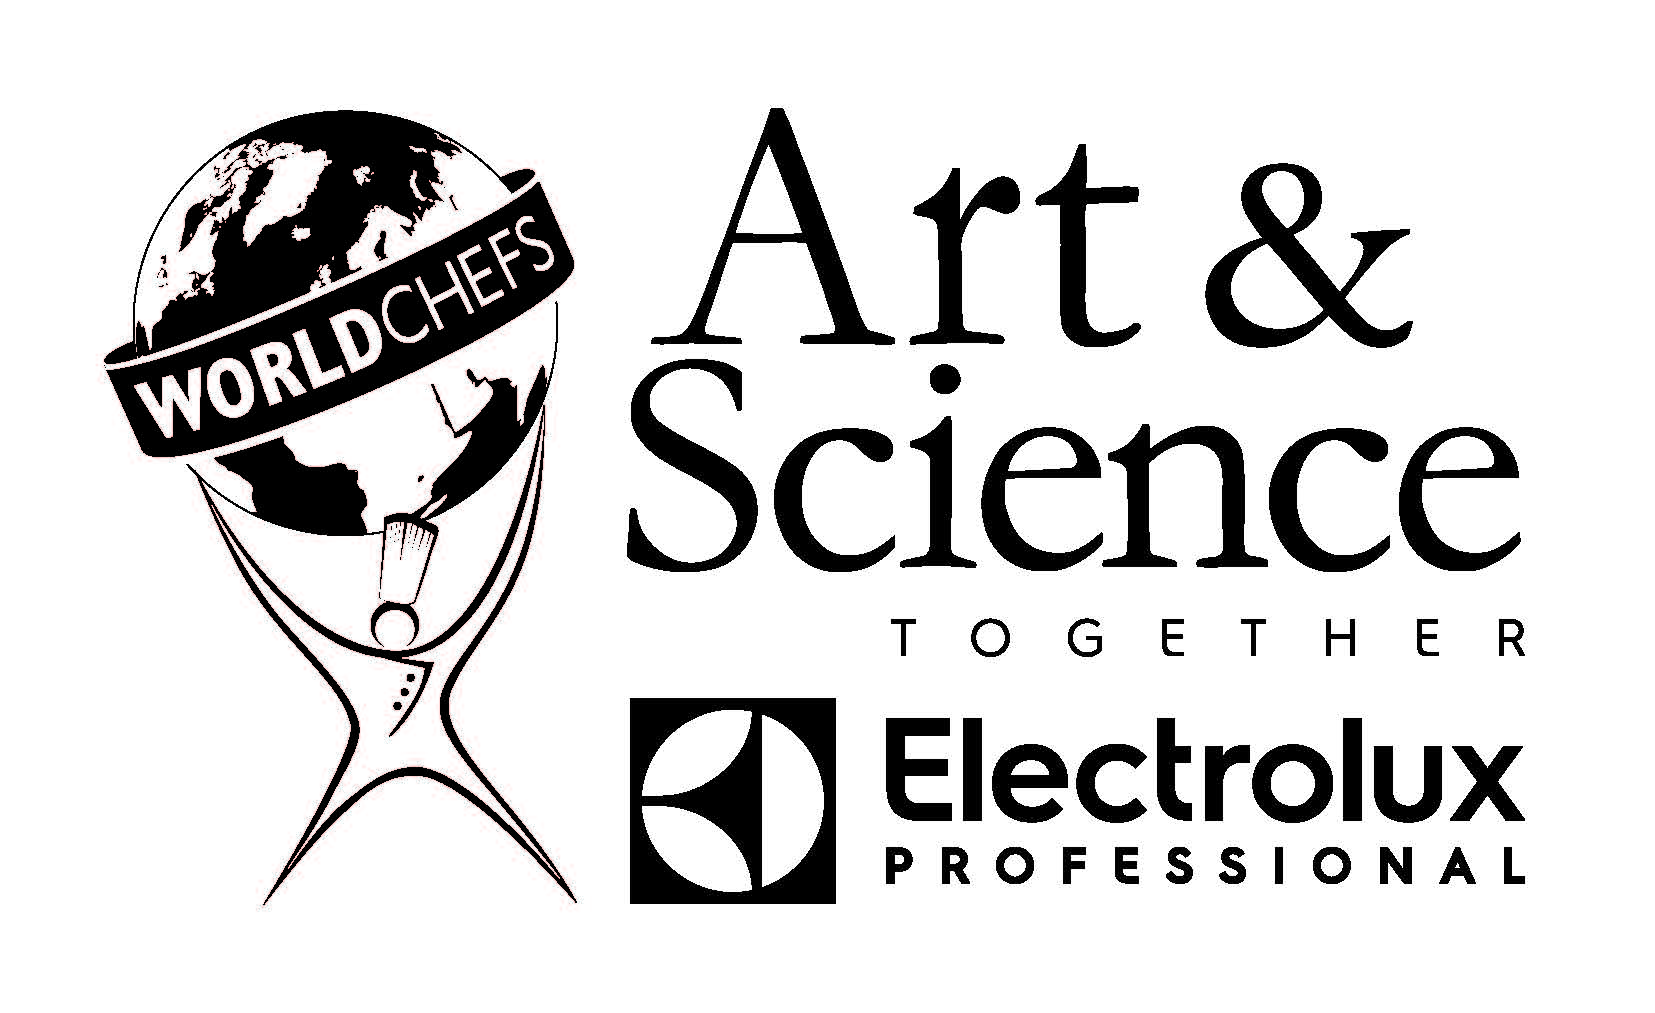 Worldchefs and Electrolux Professional logo